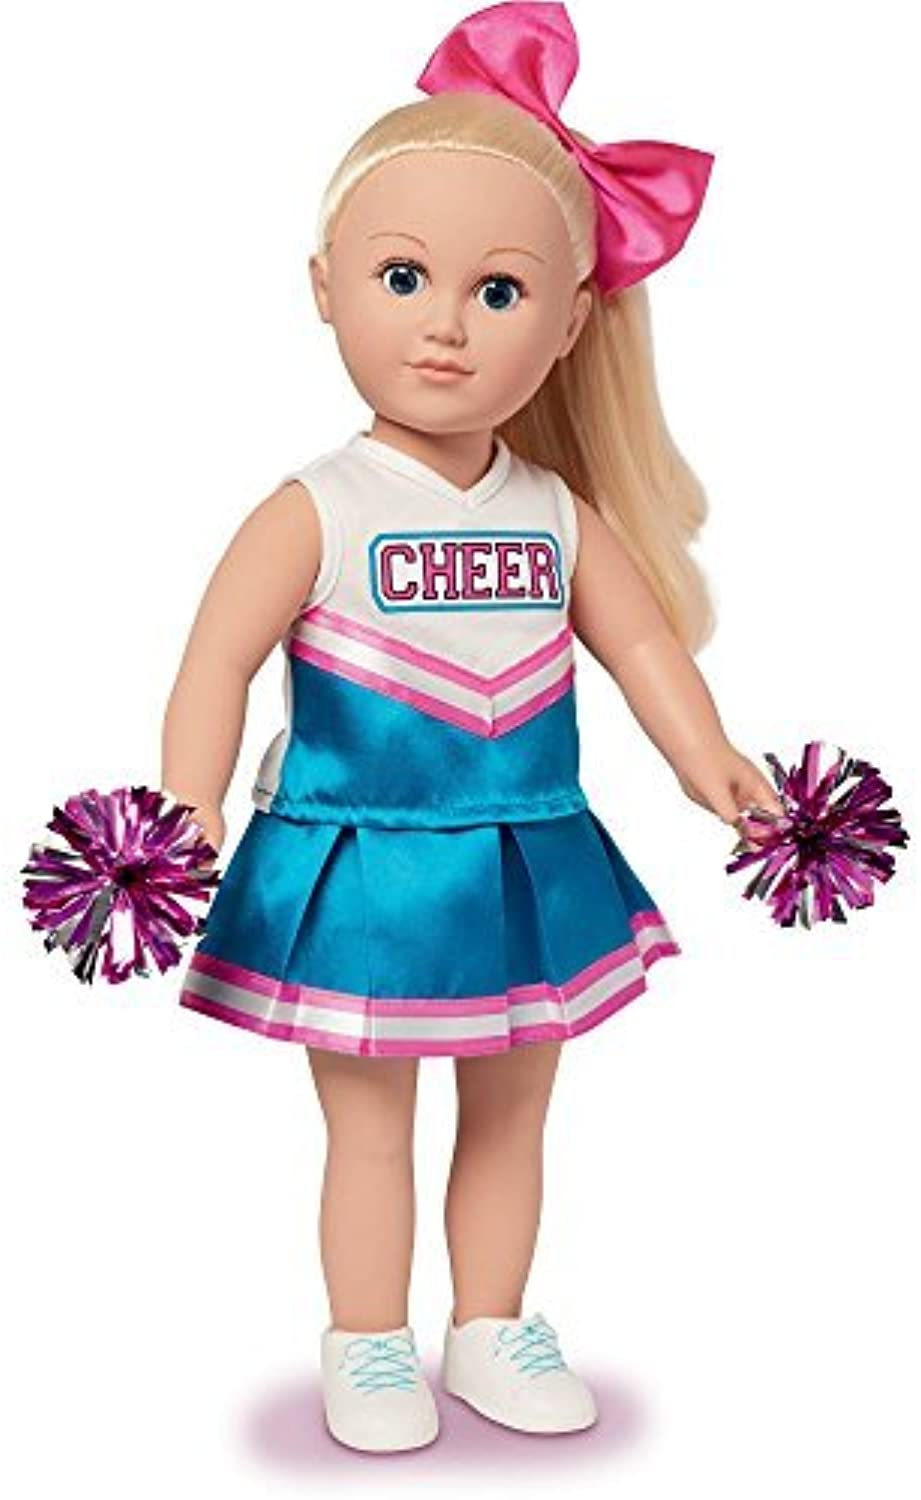 My Life As 18 Cheerleader Doll by Fashion Dolls